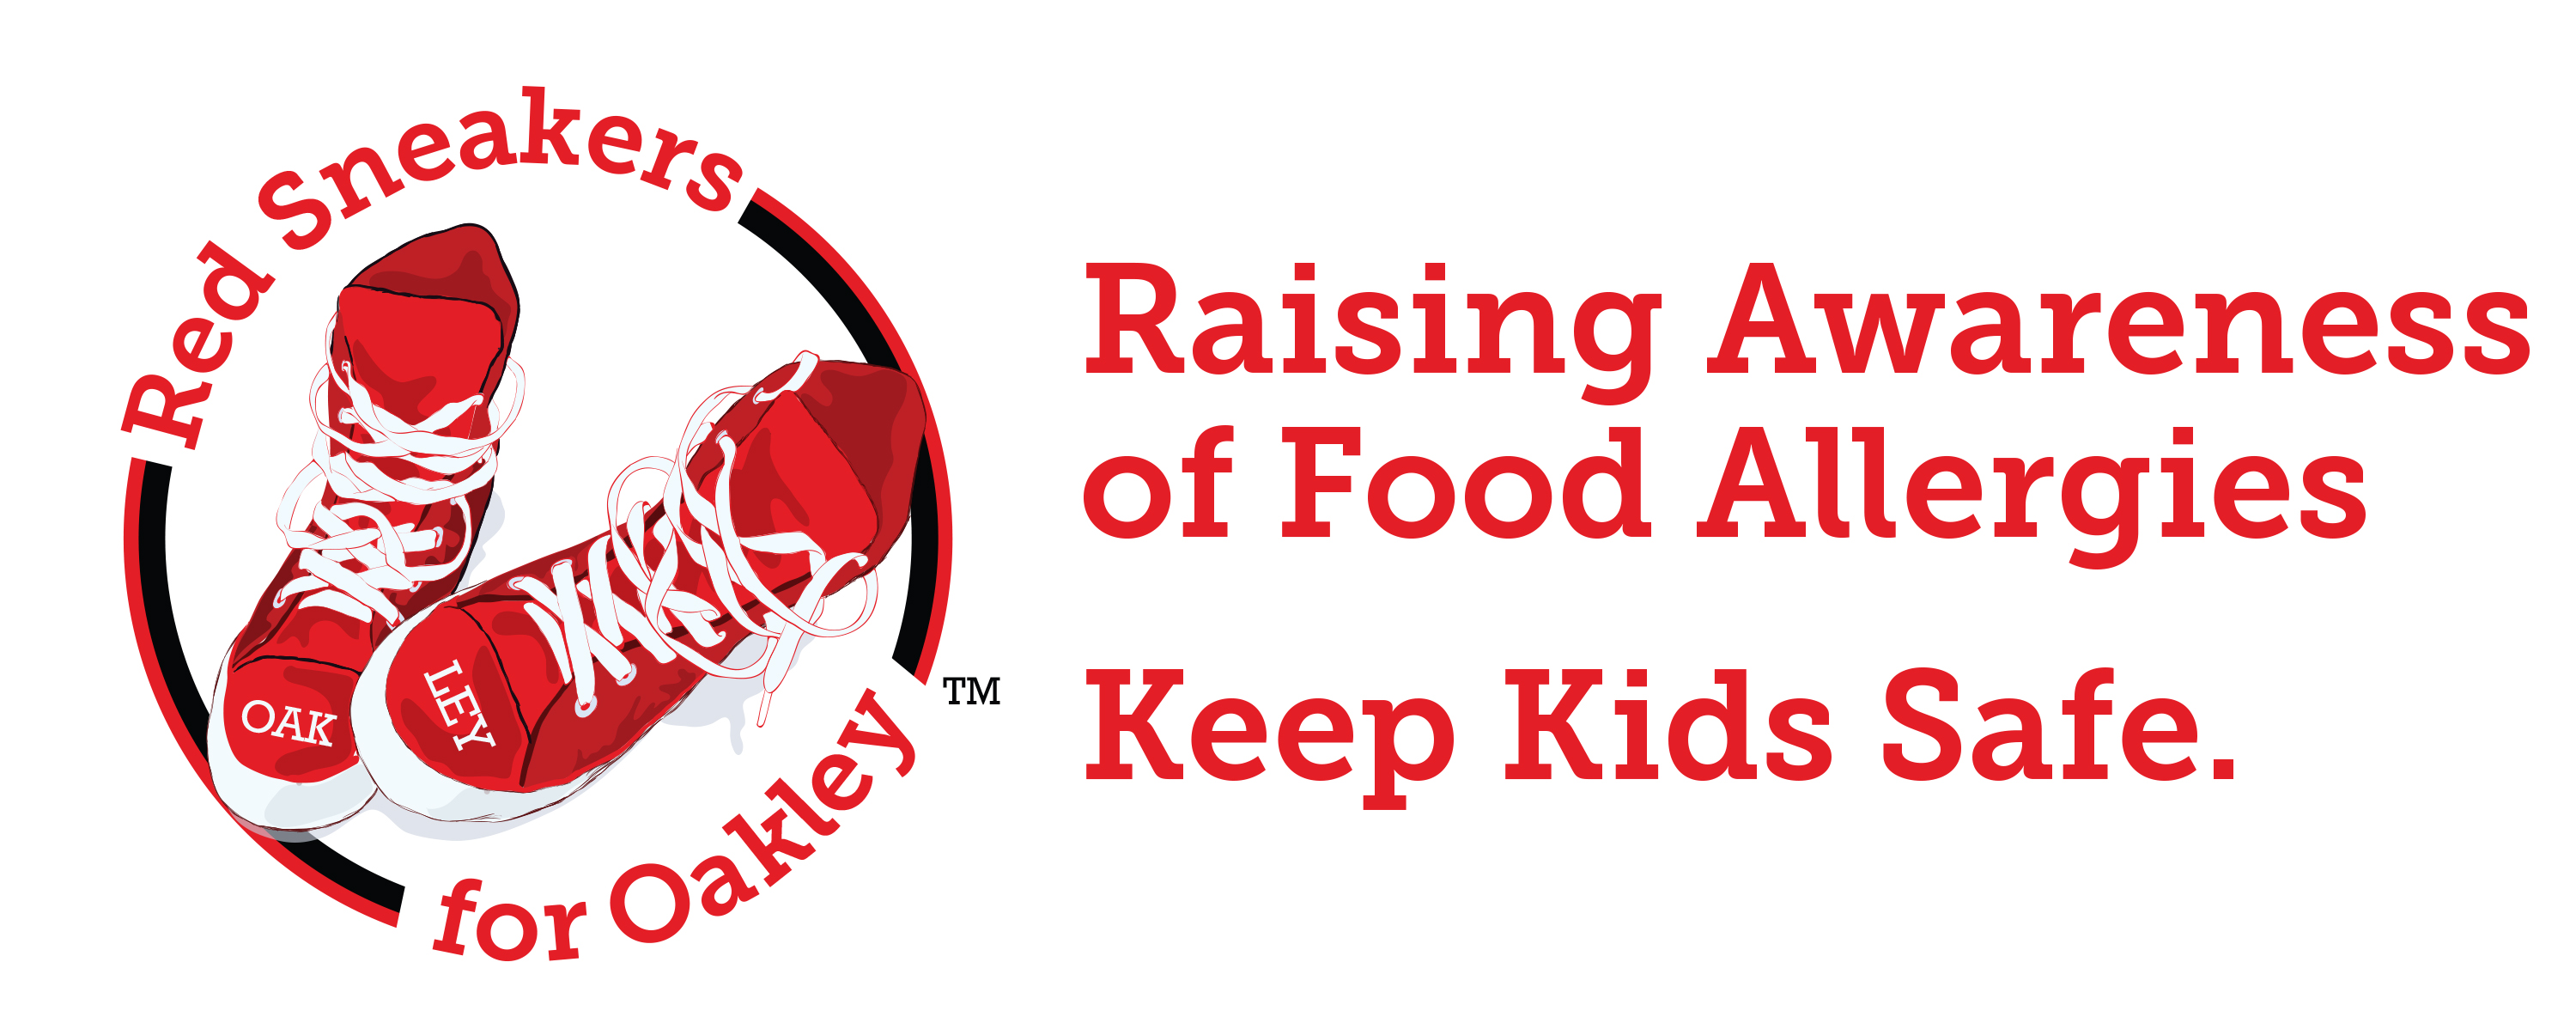 Red Sneakers for Oakley Launches Food Allergy Campaign to ... Raising Awareness